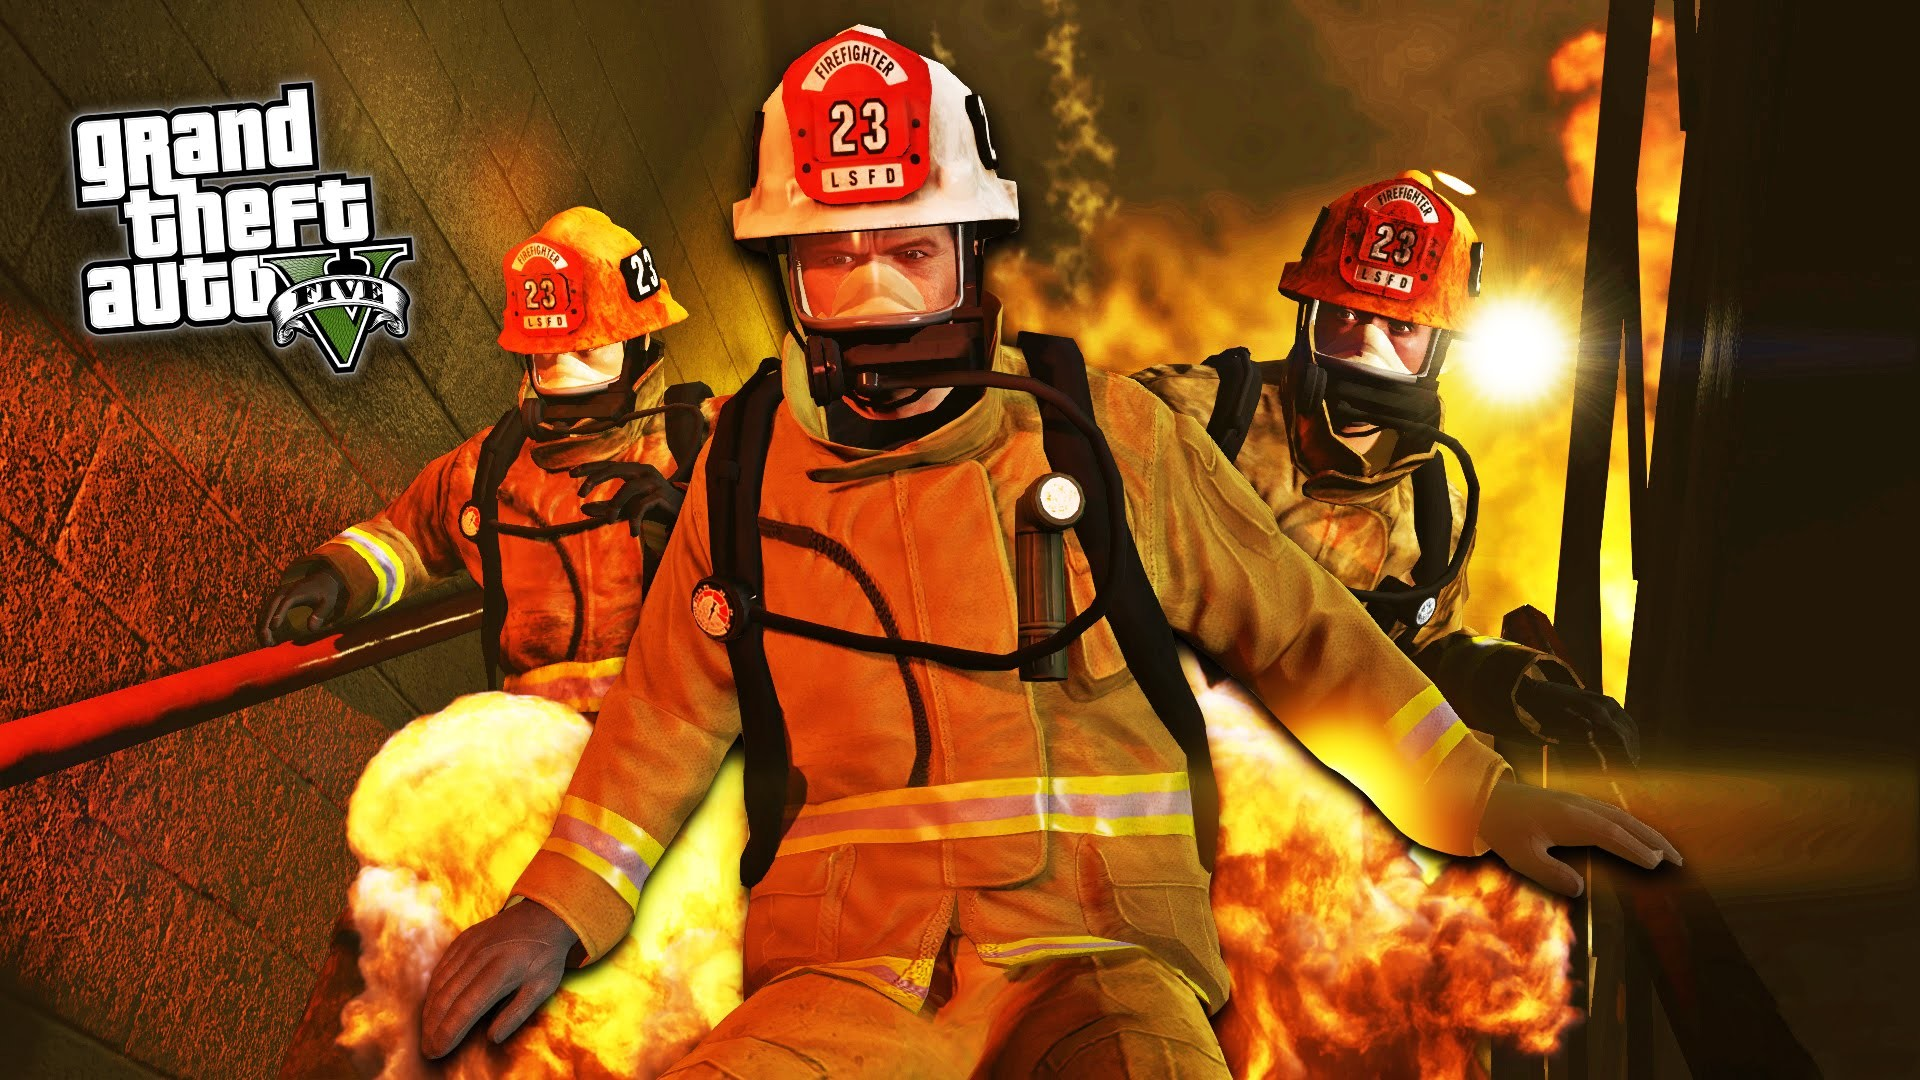 Res: 1920x1080, HQ Firefighter Wallpapers | File 392.72Kb